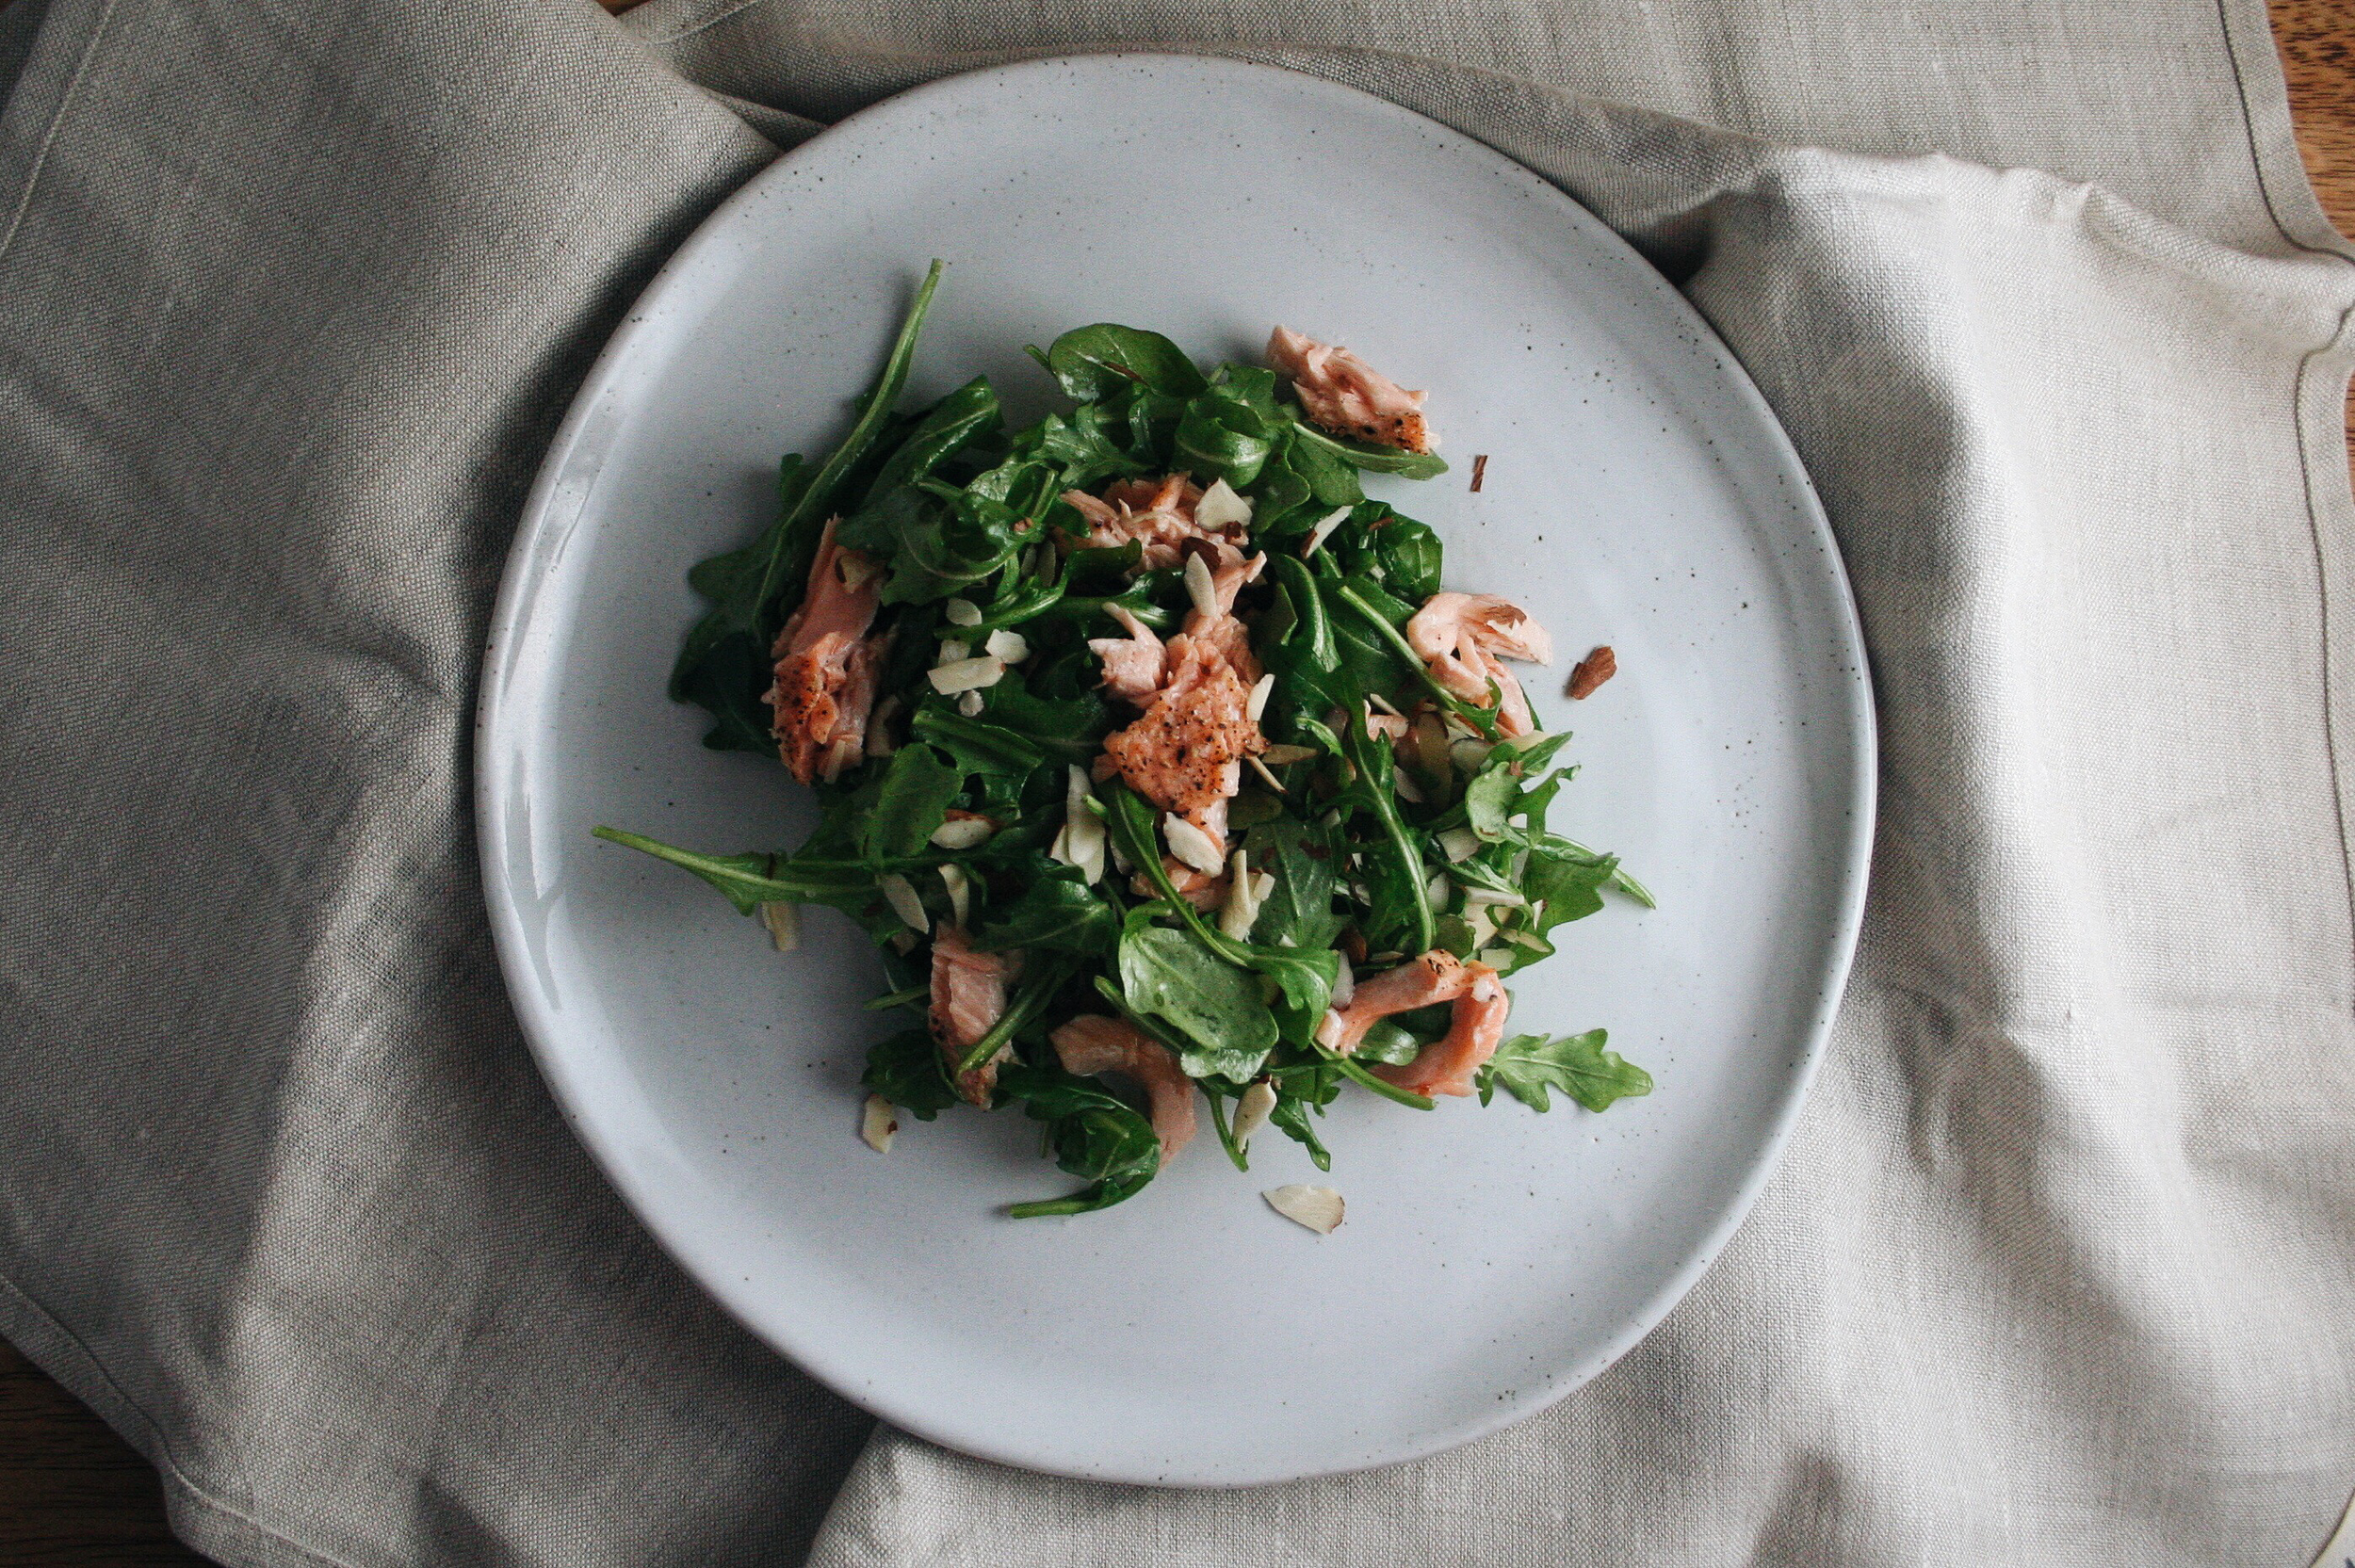 The City Skillet | Simple Salad with Salmon, Arugula, Almonds, and April Bloomfield's Dressing